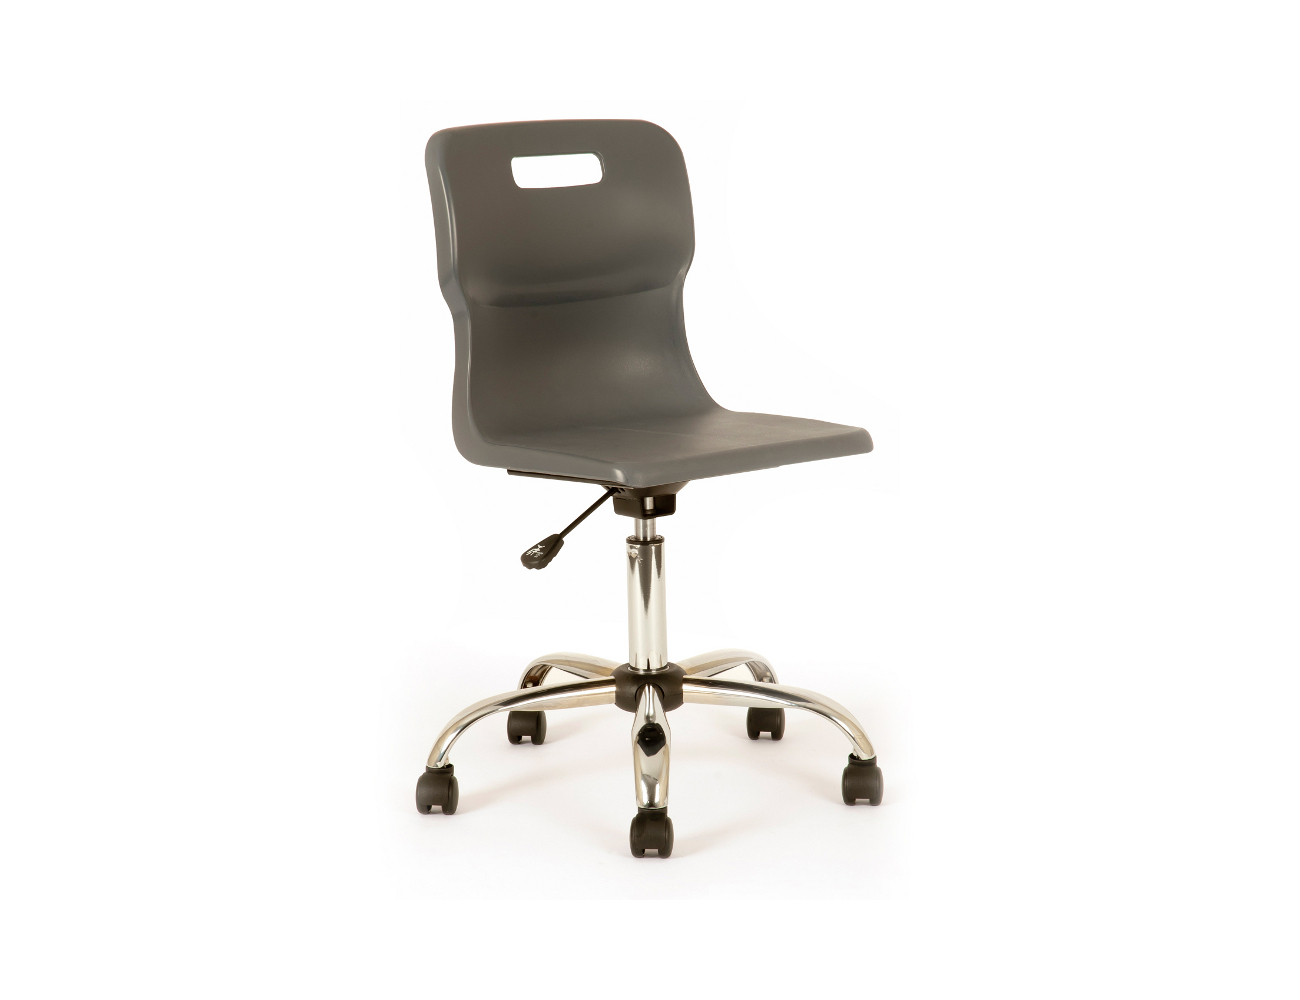 Classroom Swivel Chair on Swivel Base  Perfect for Education